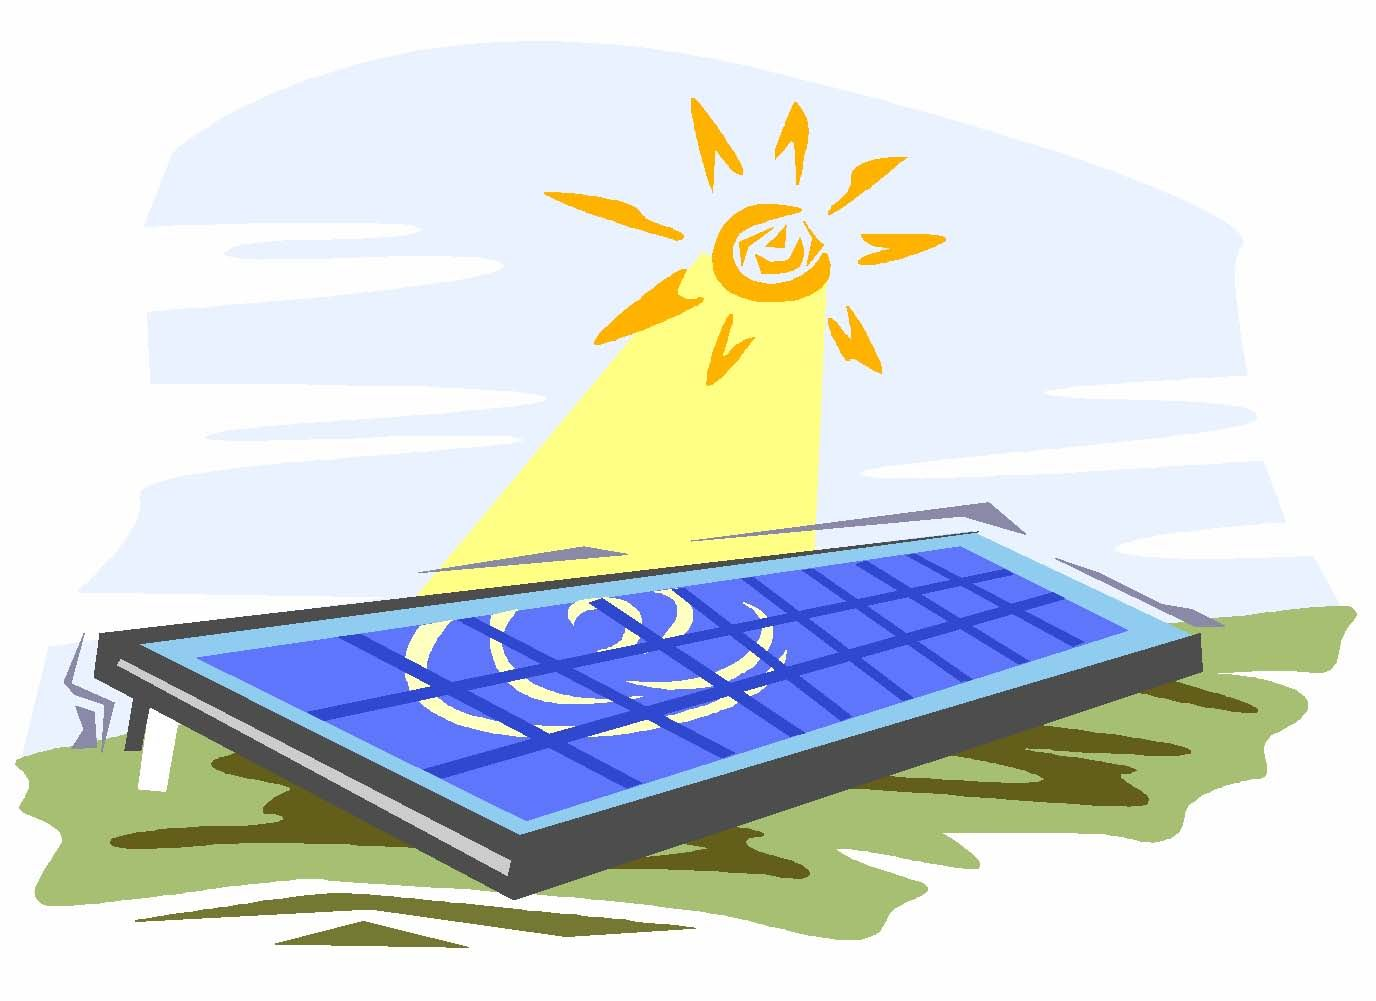 Energy clipart solar panel. Black and white beautiful